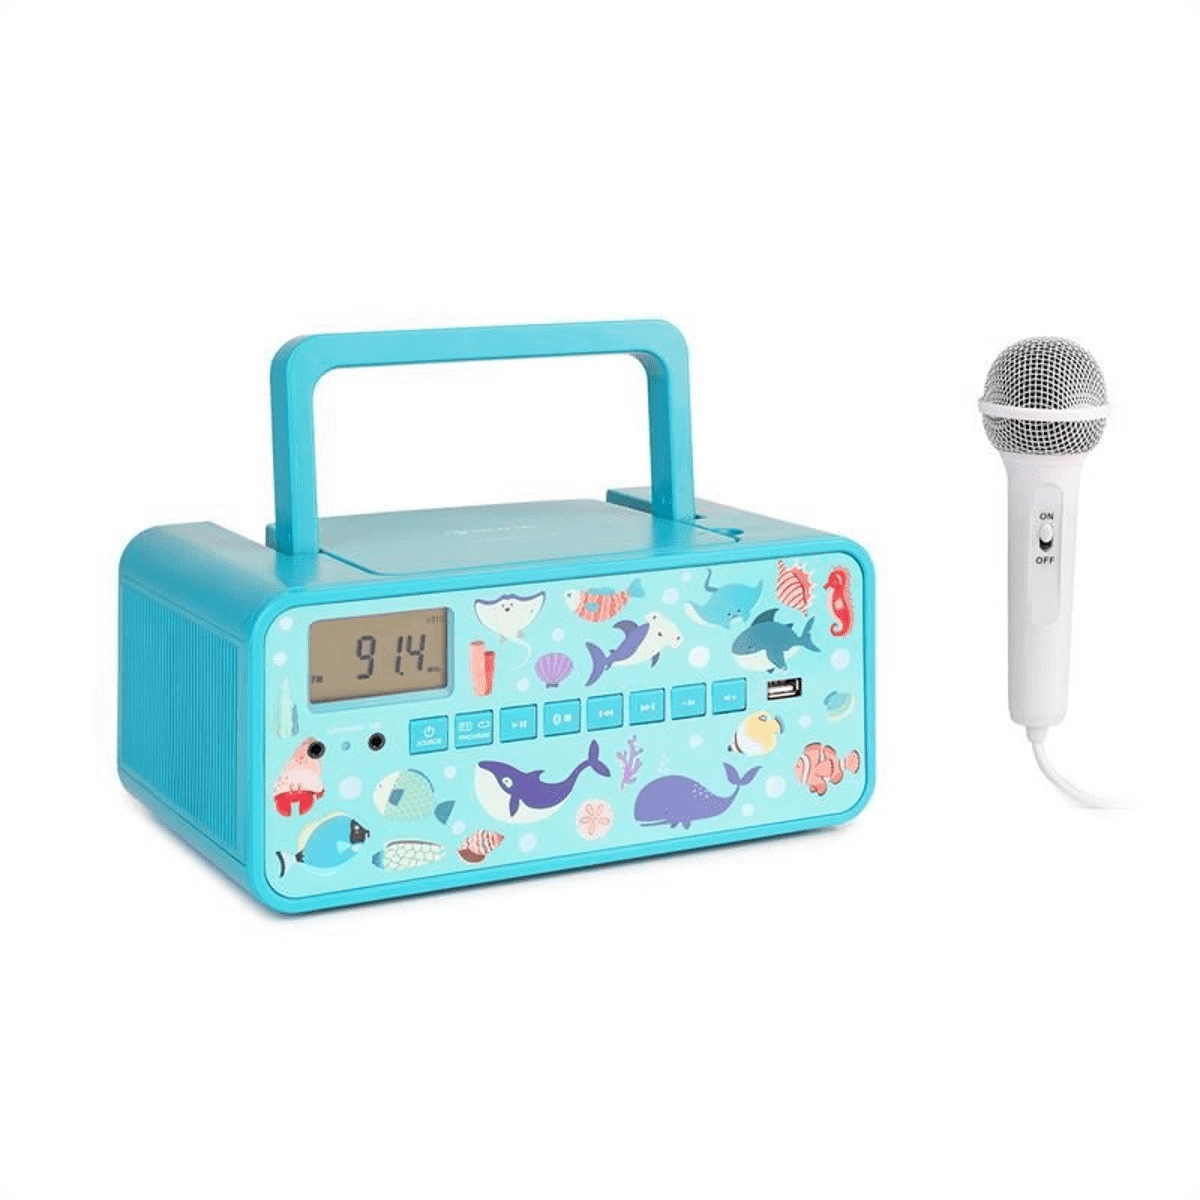 auna Kidsbox Boombox lecteur CD MP3 Bluetooth FM aux écran